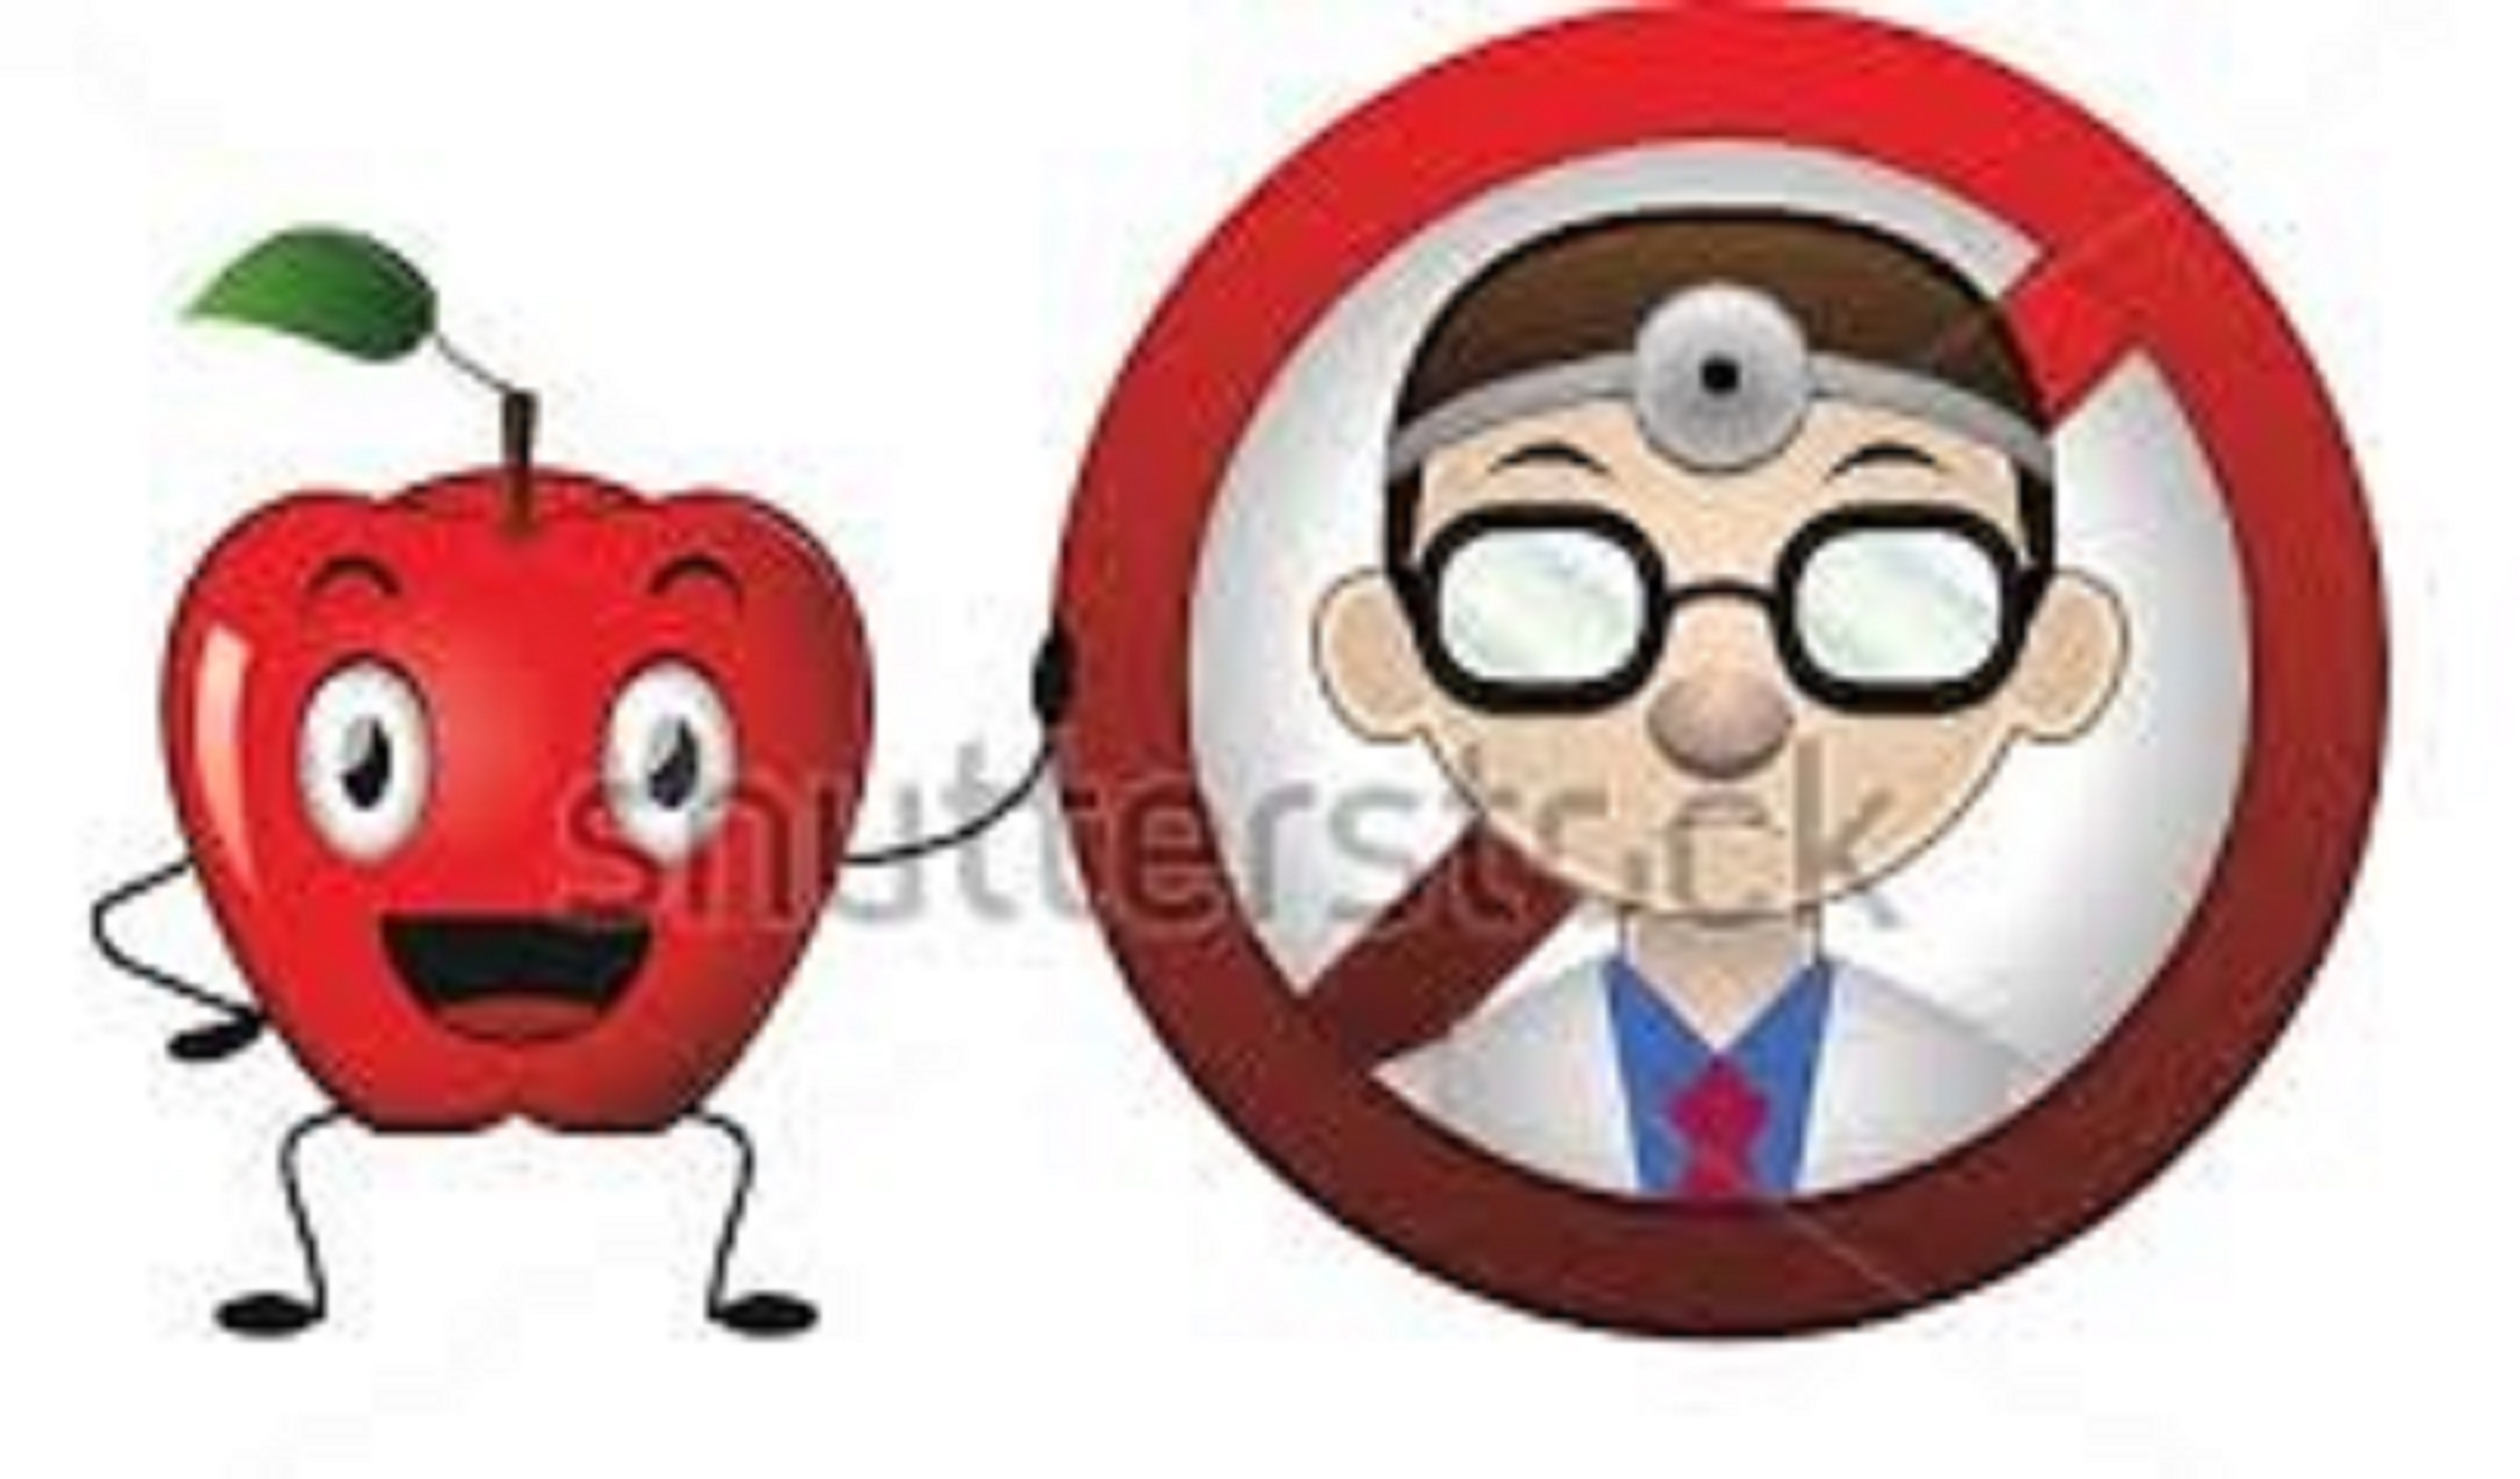 Does an apple a day keep the doctor away? Not quite!